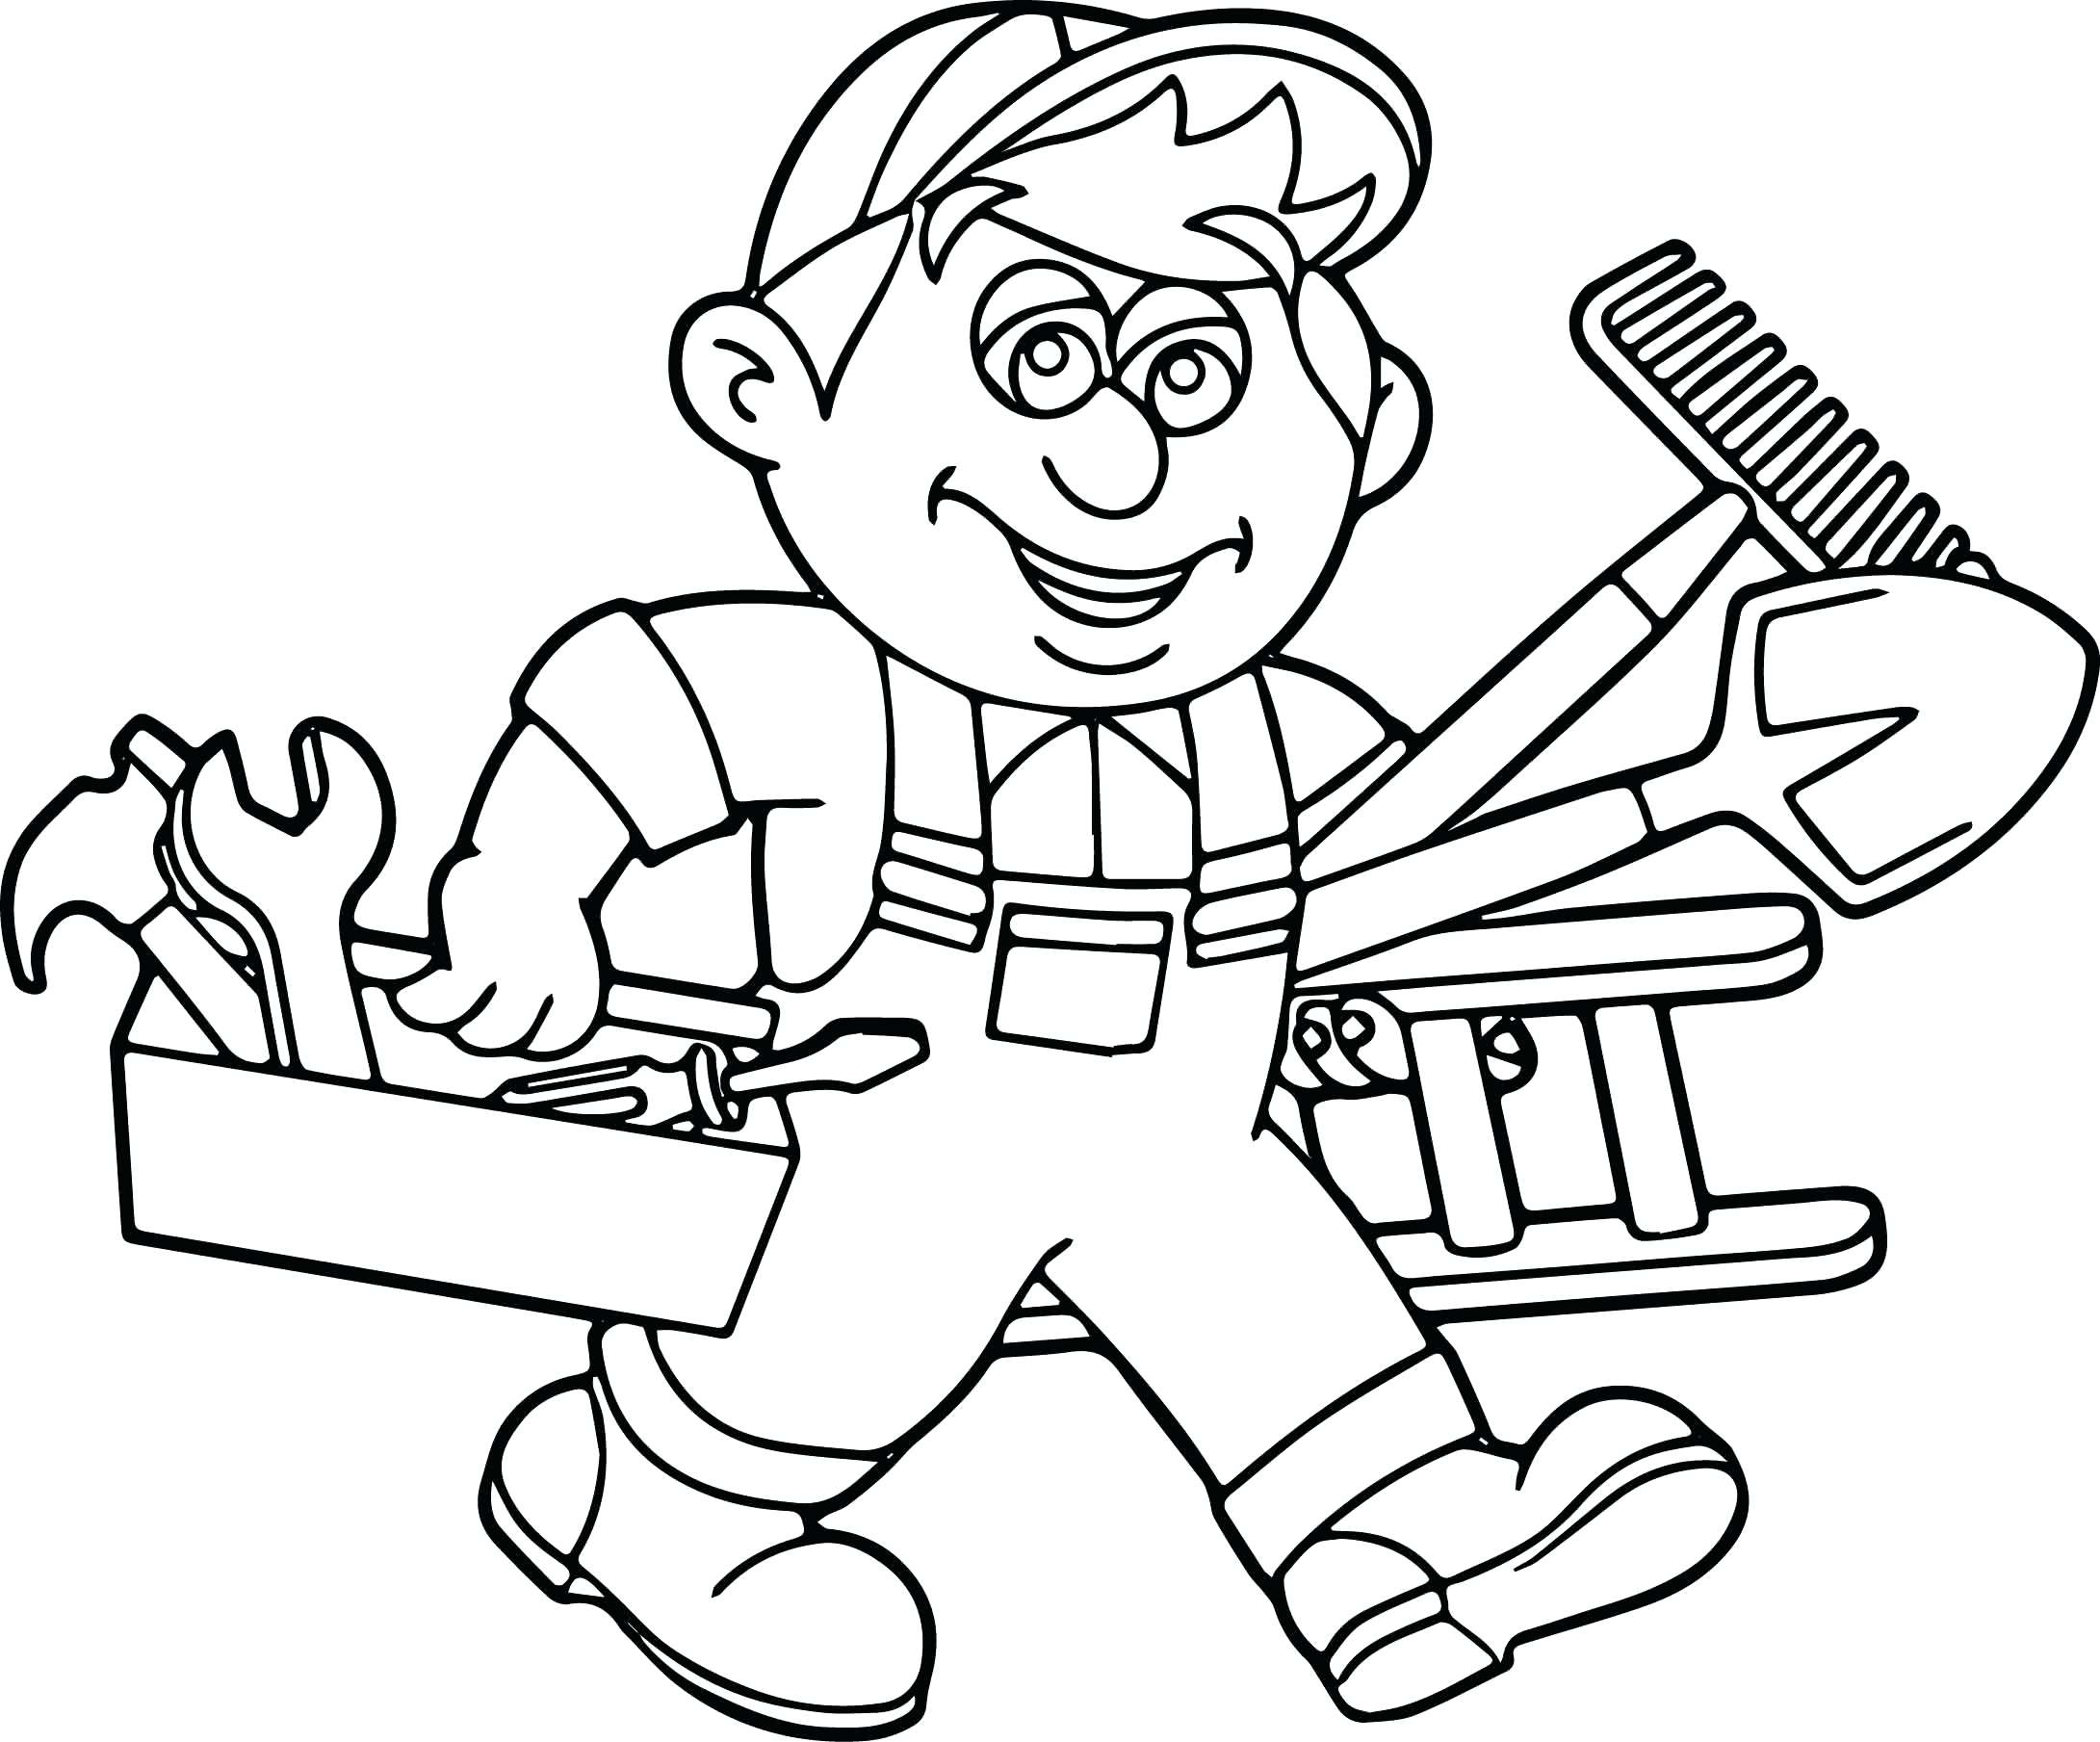 2181x1809 Coloring Pages Thanksgiving Printable Got Wood Make Wooden Gadgets